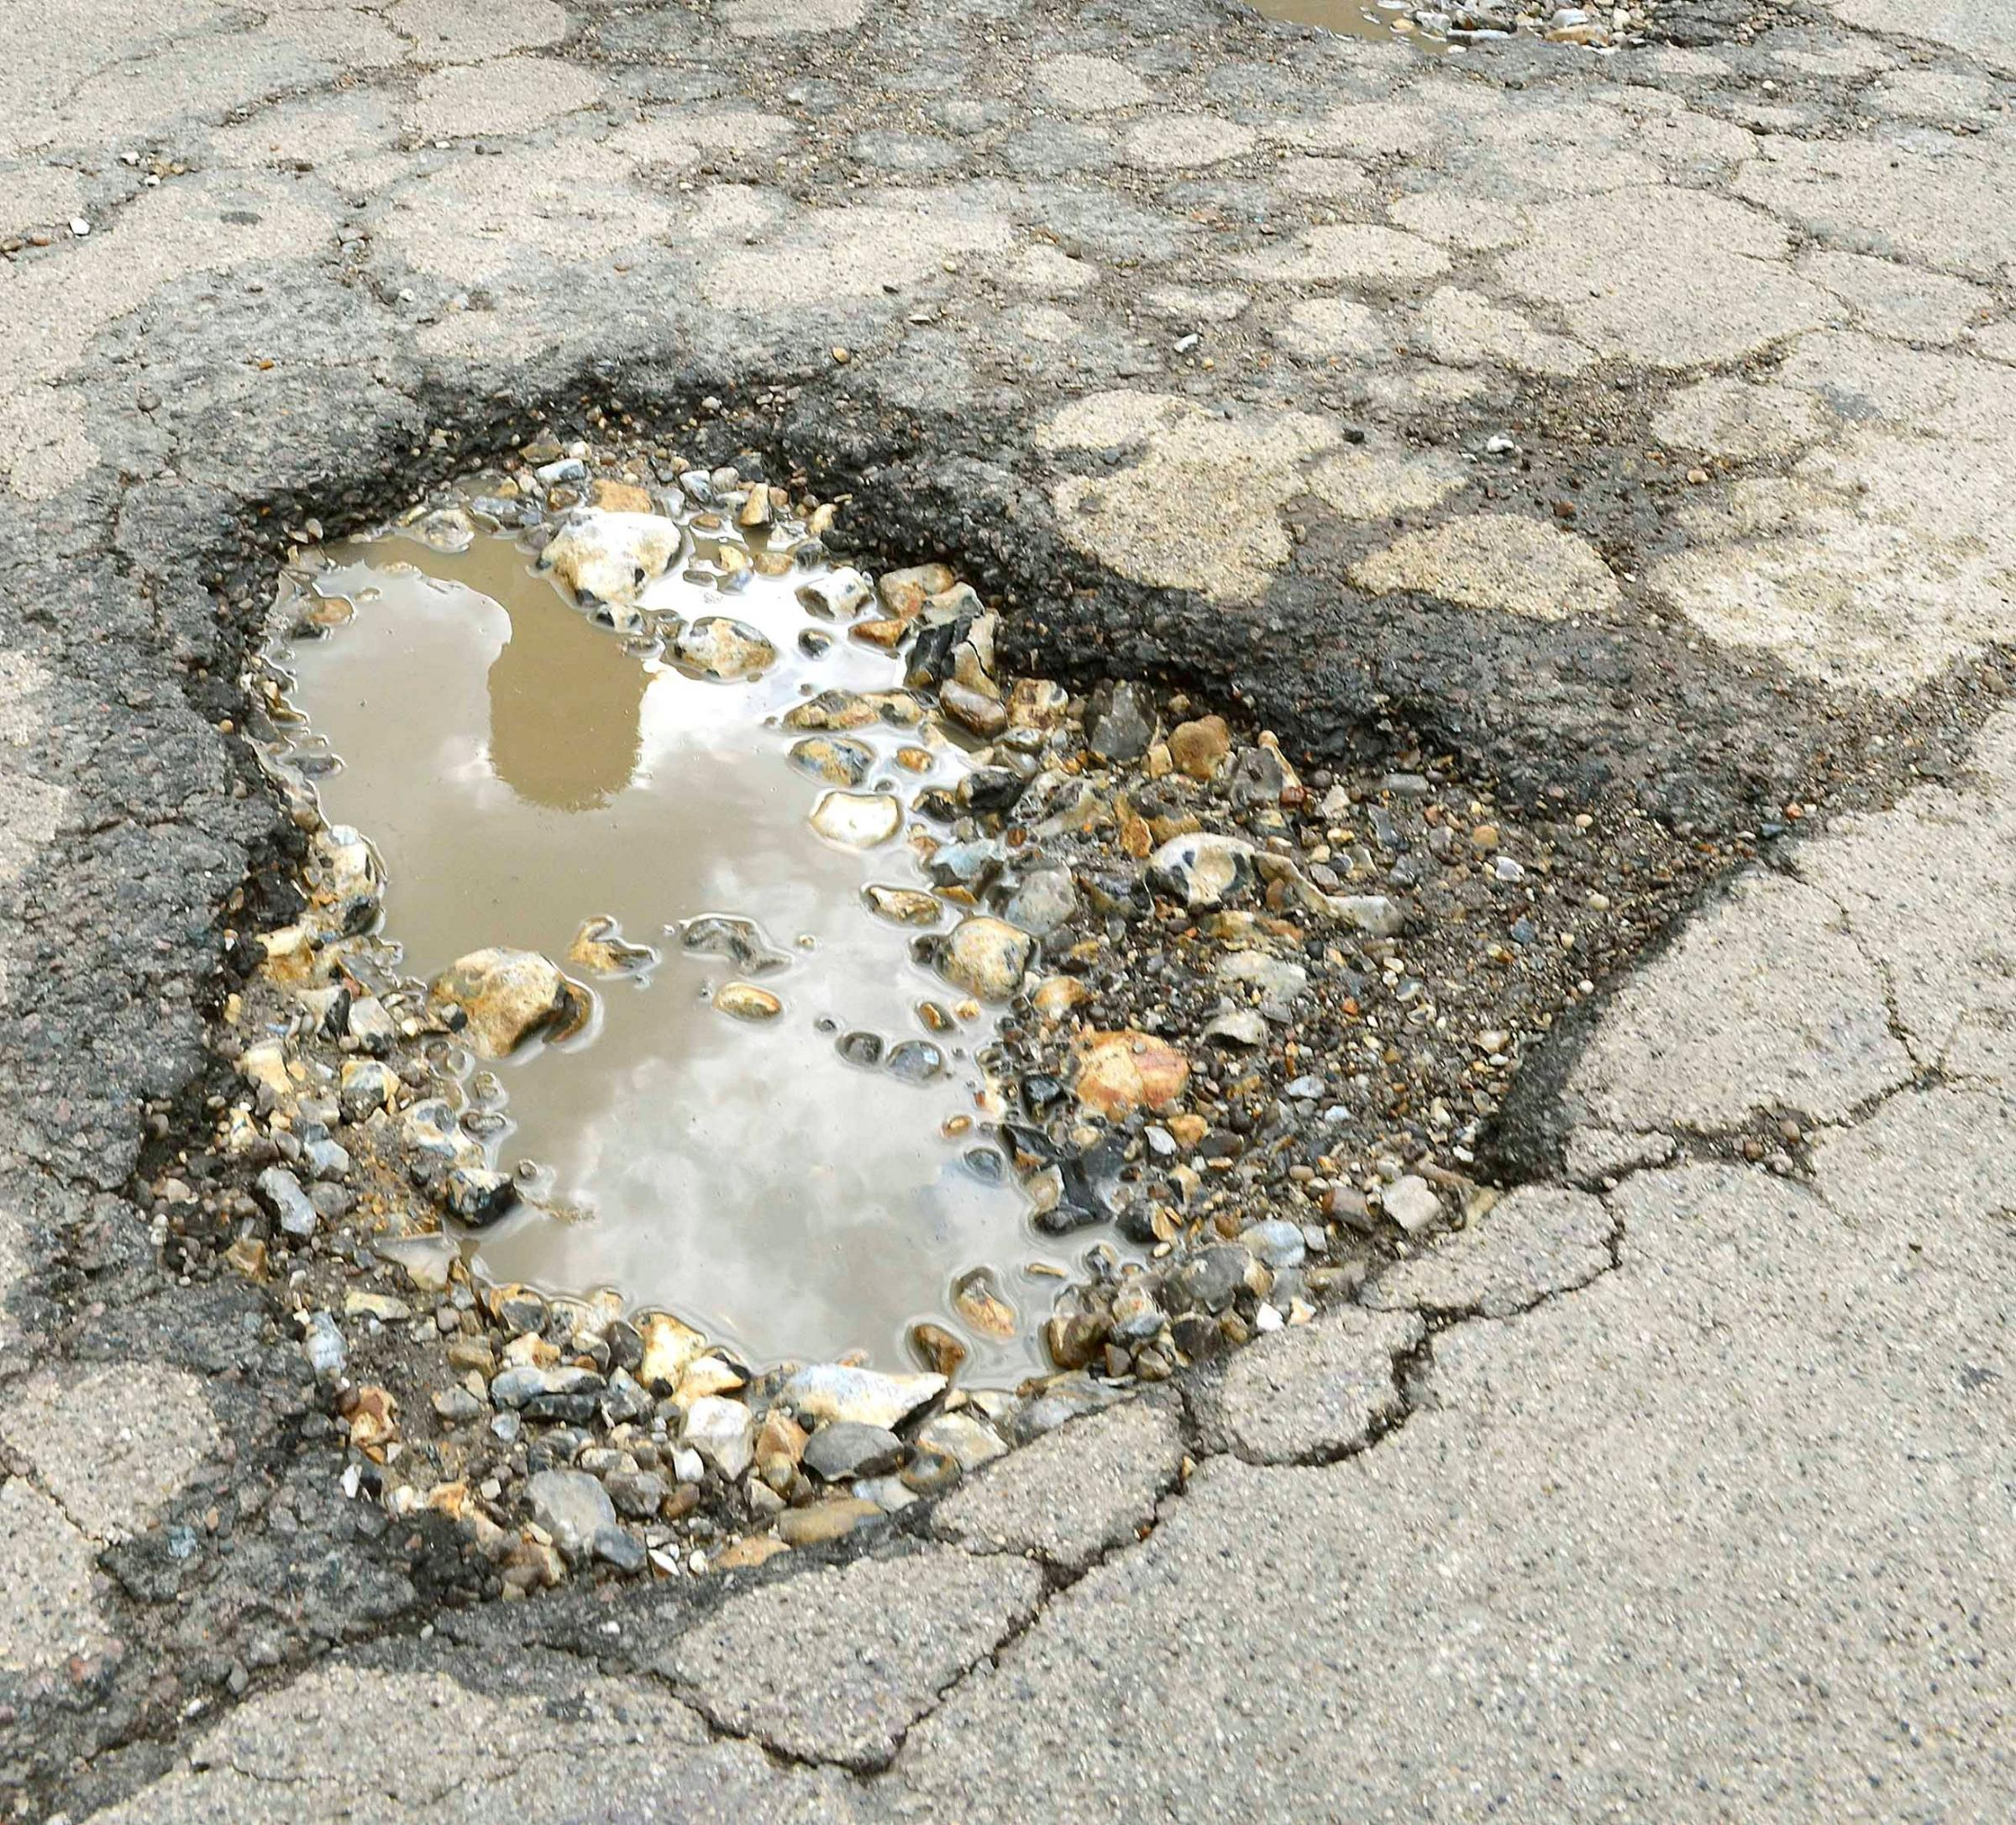 It is thought there are about 16,000 pot holes throughout Essex.